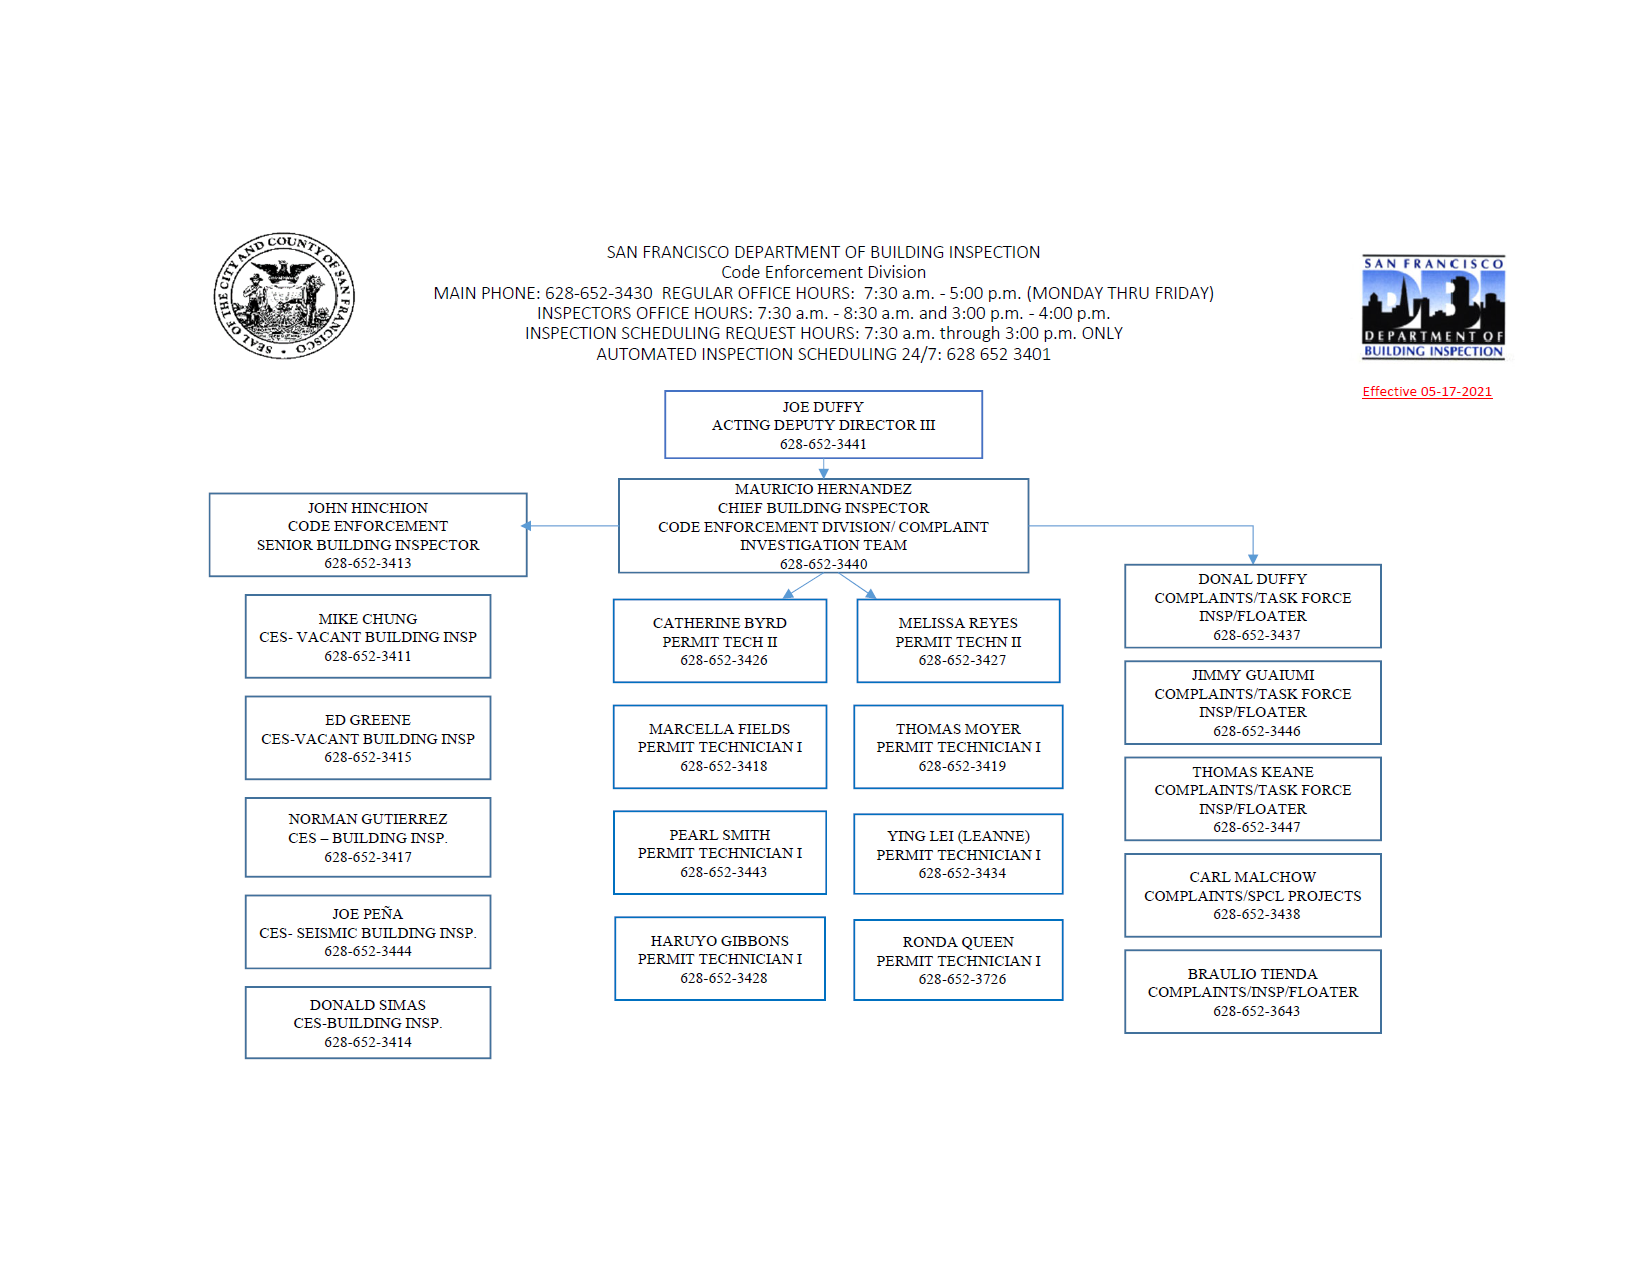 Image of Code Enforcement Section Organizational Chart